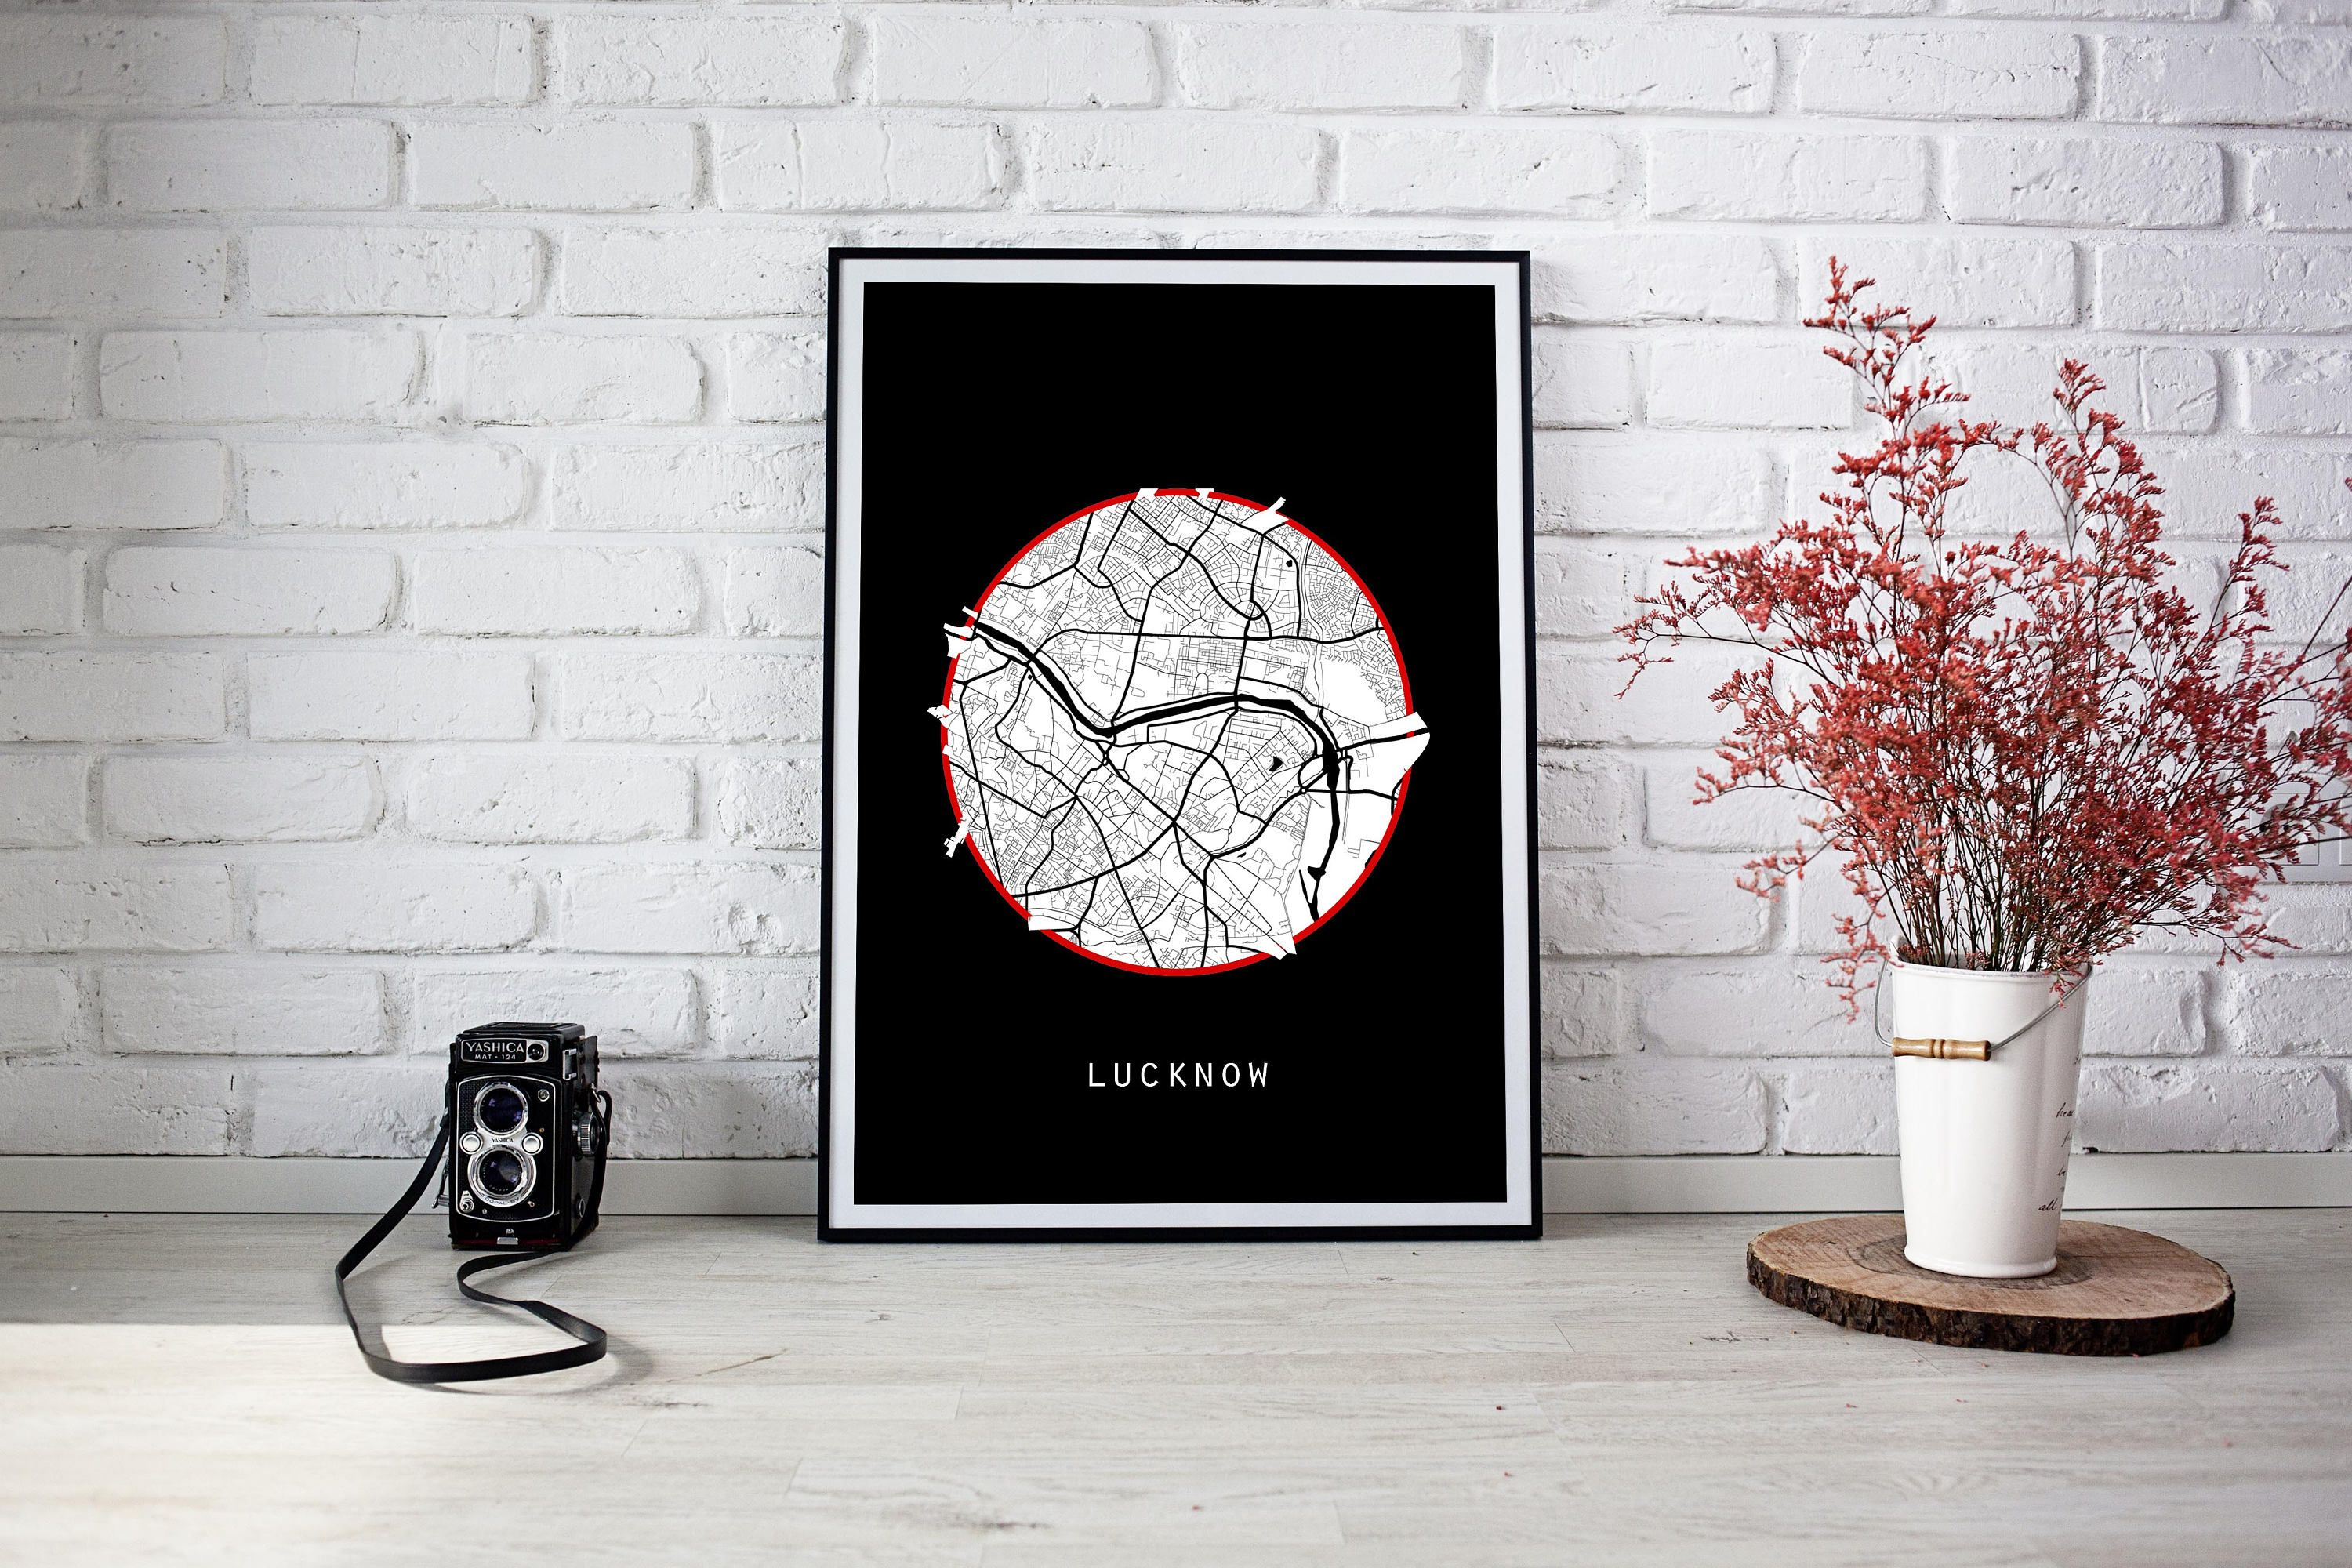 Lucknow map world map india map maps black and white map lucknow map world map india map maps black and white map minimalistic map minimal map black mapwhite mapminimal india map by somethingartstudio on gumiabroncs Image collections